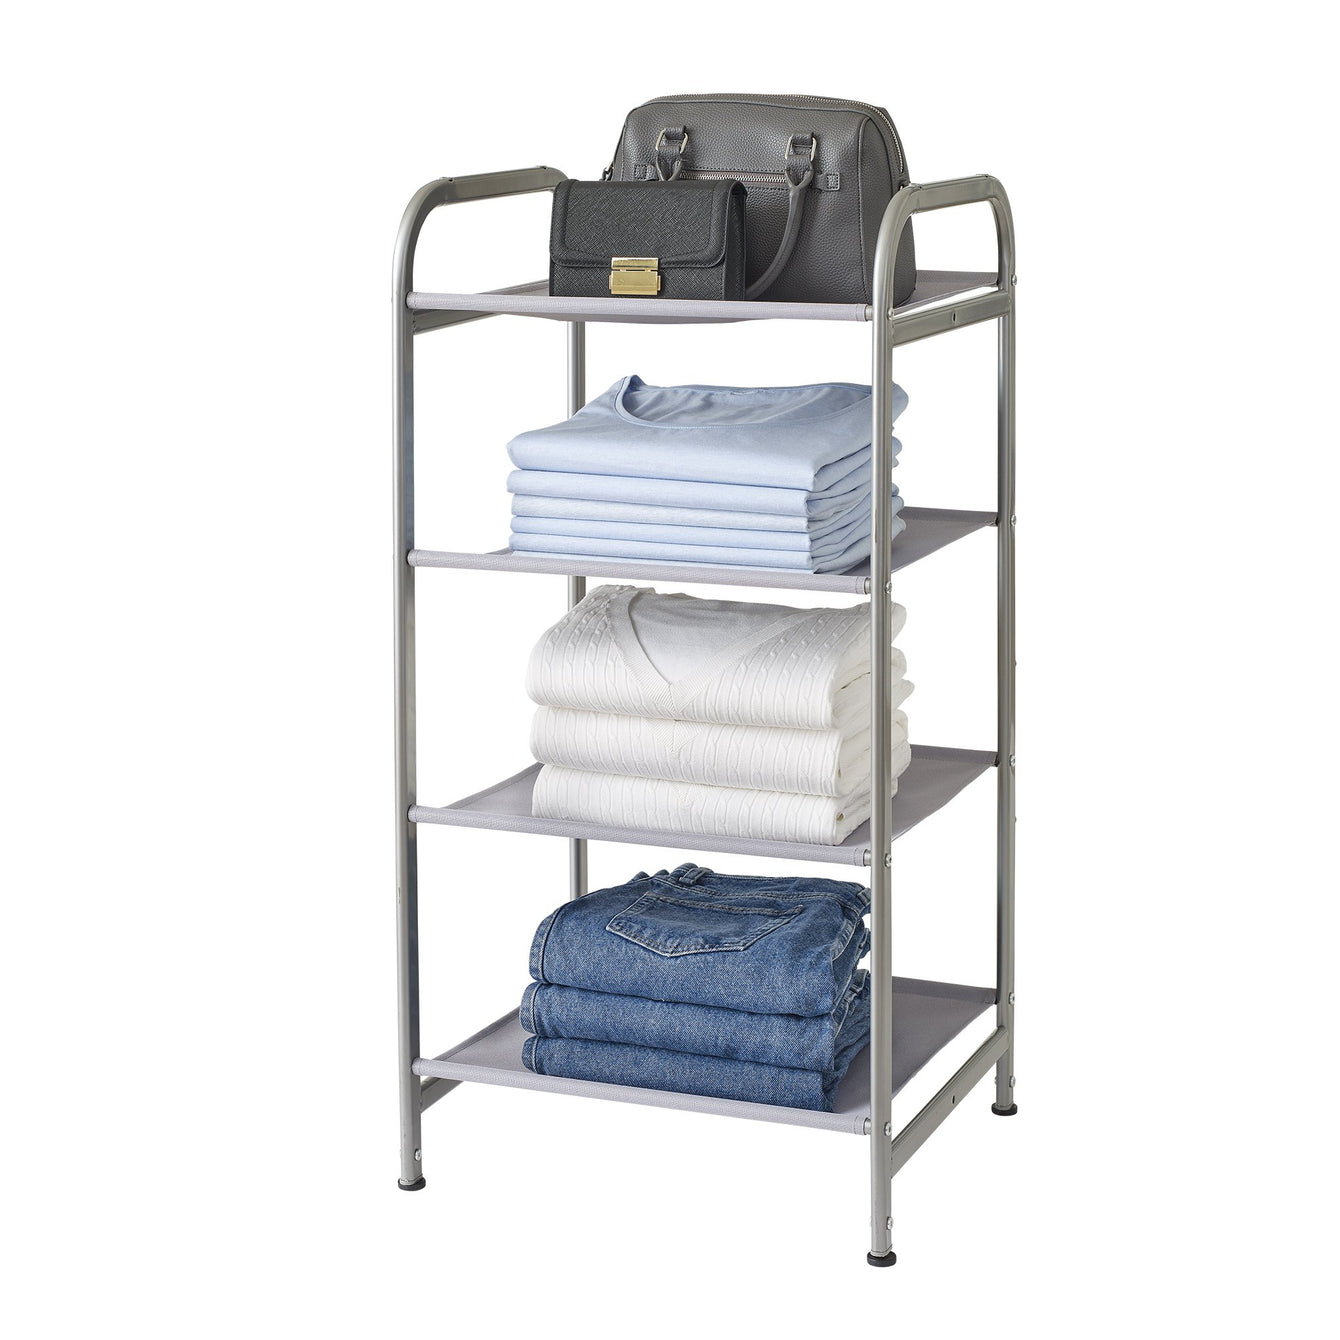 Versa System - Shelf and 10 Cubby Tower